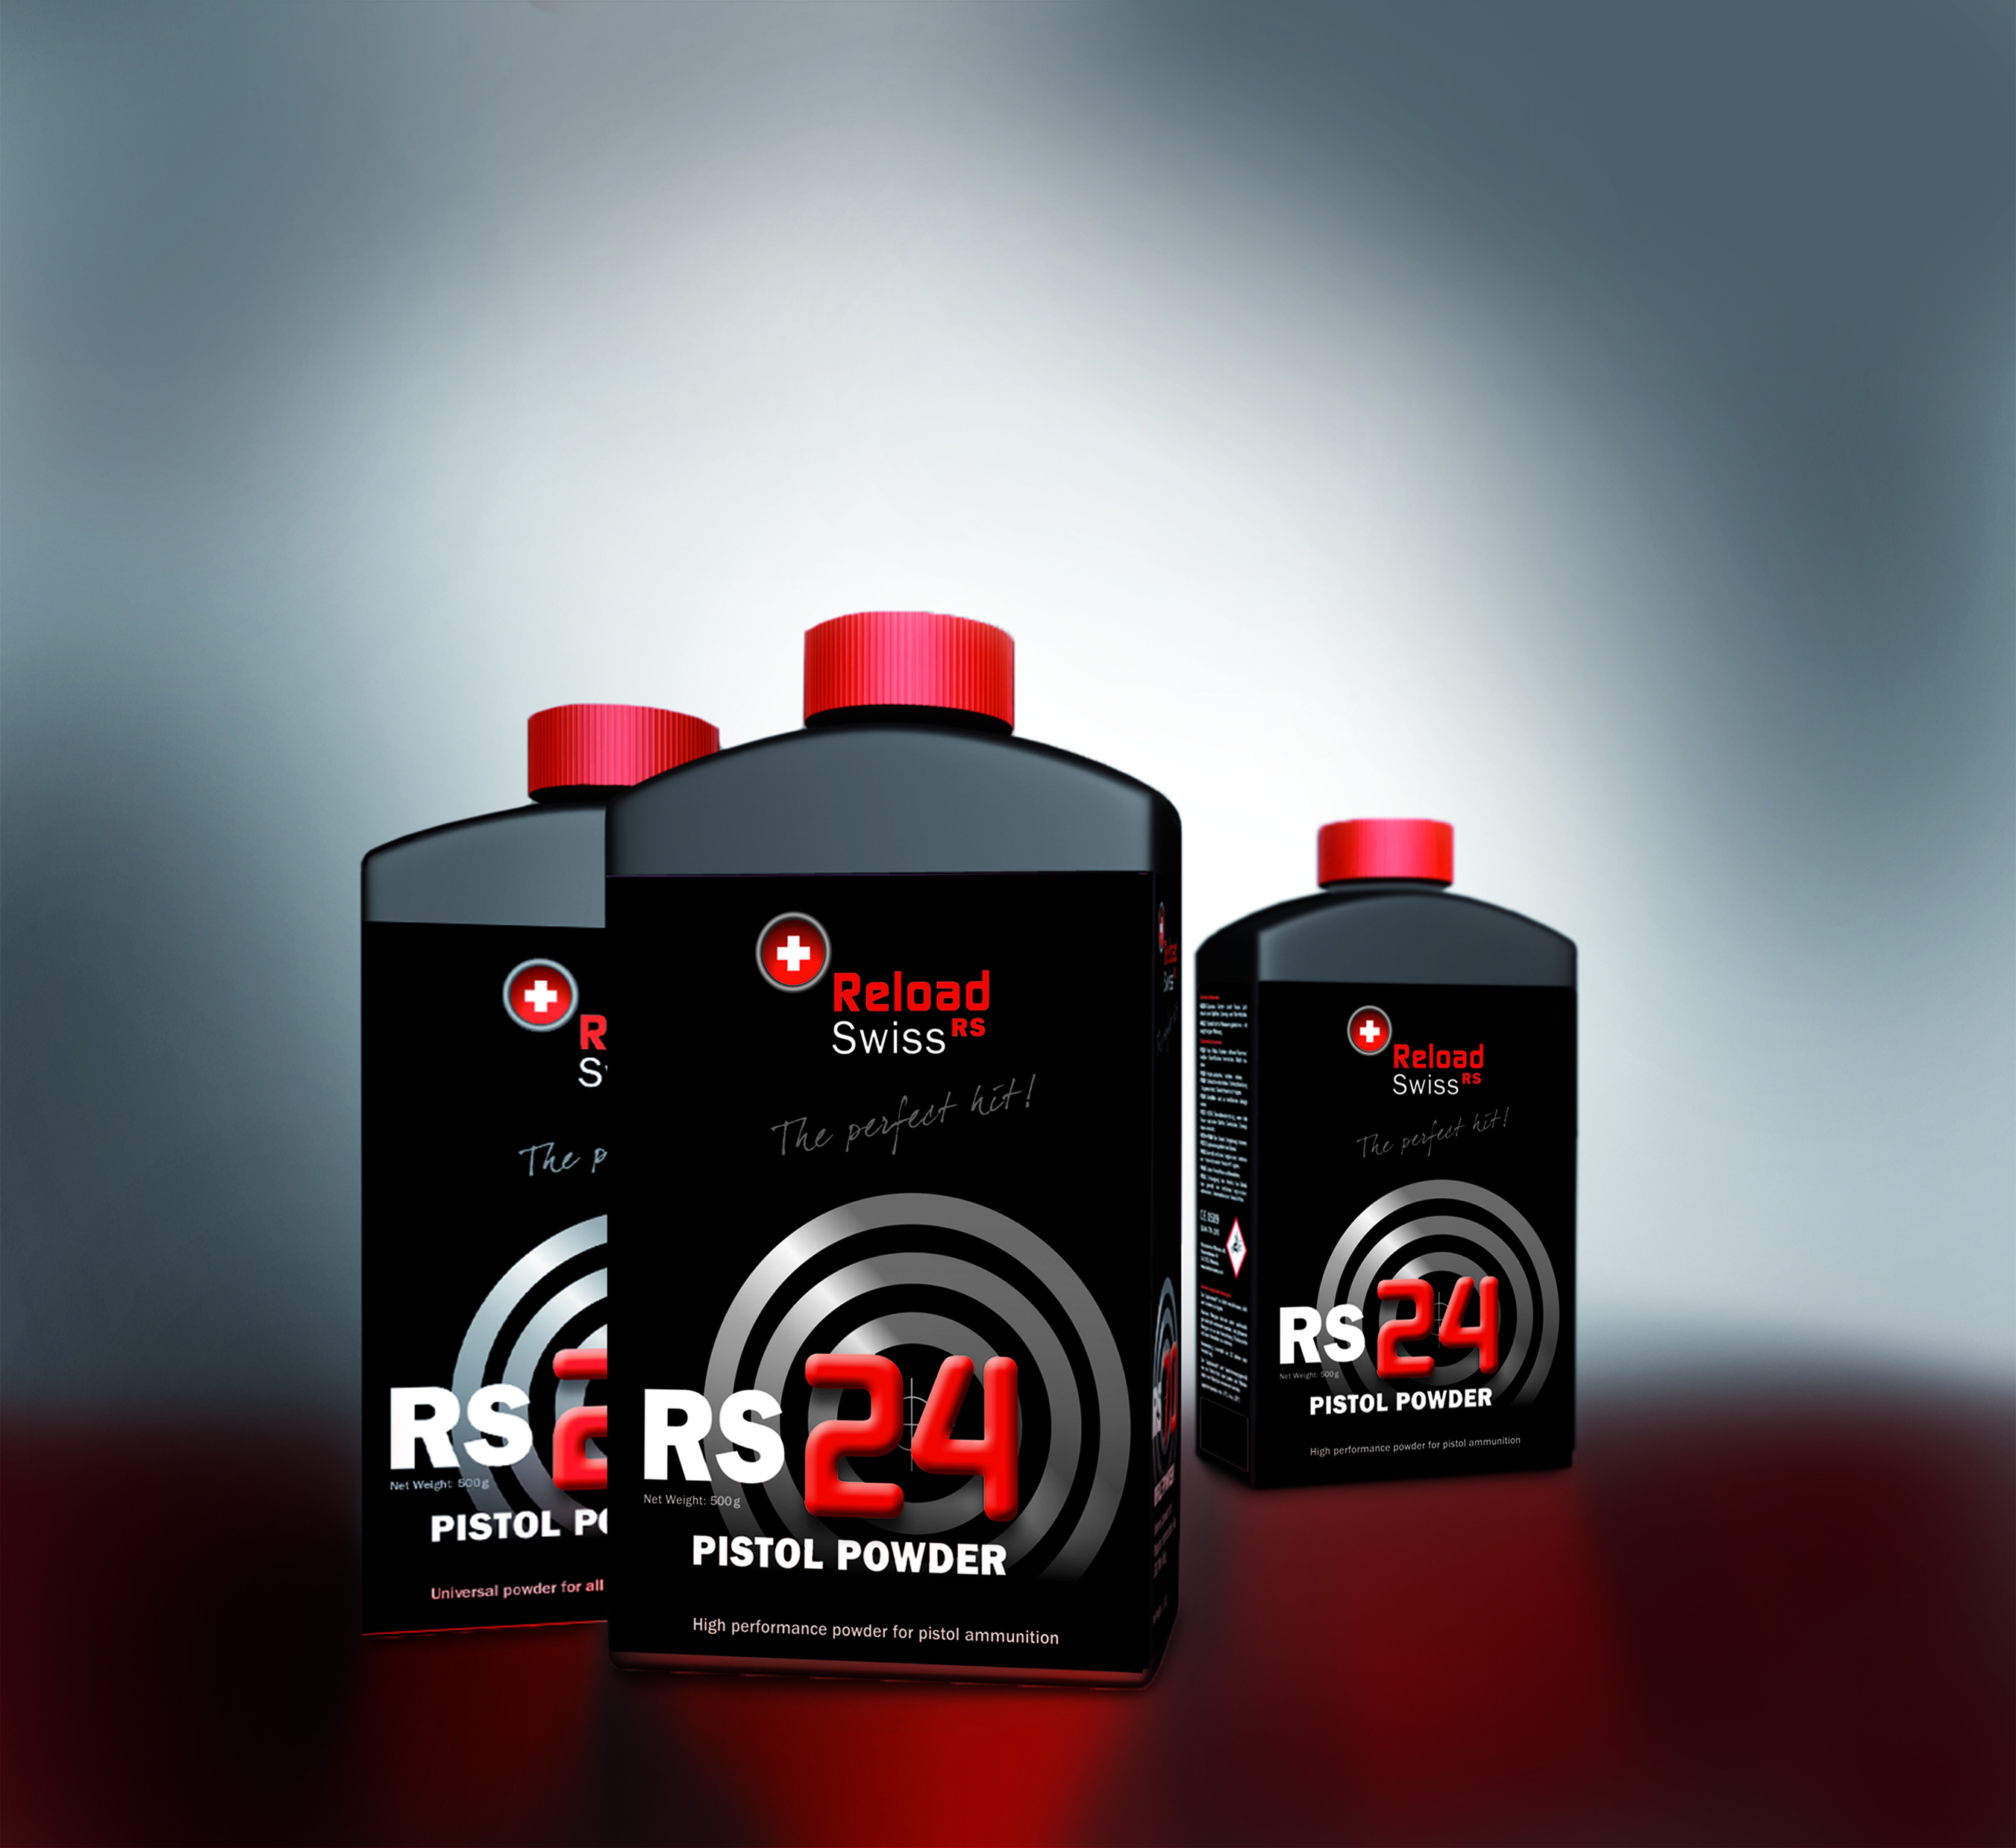 Reload Swiss RS 24 - 0,5 kg